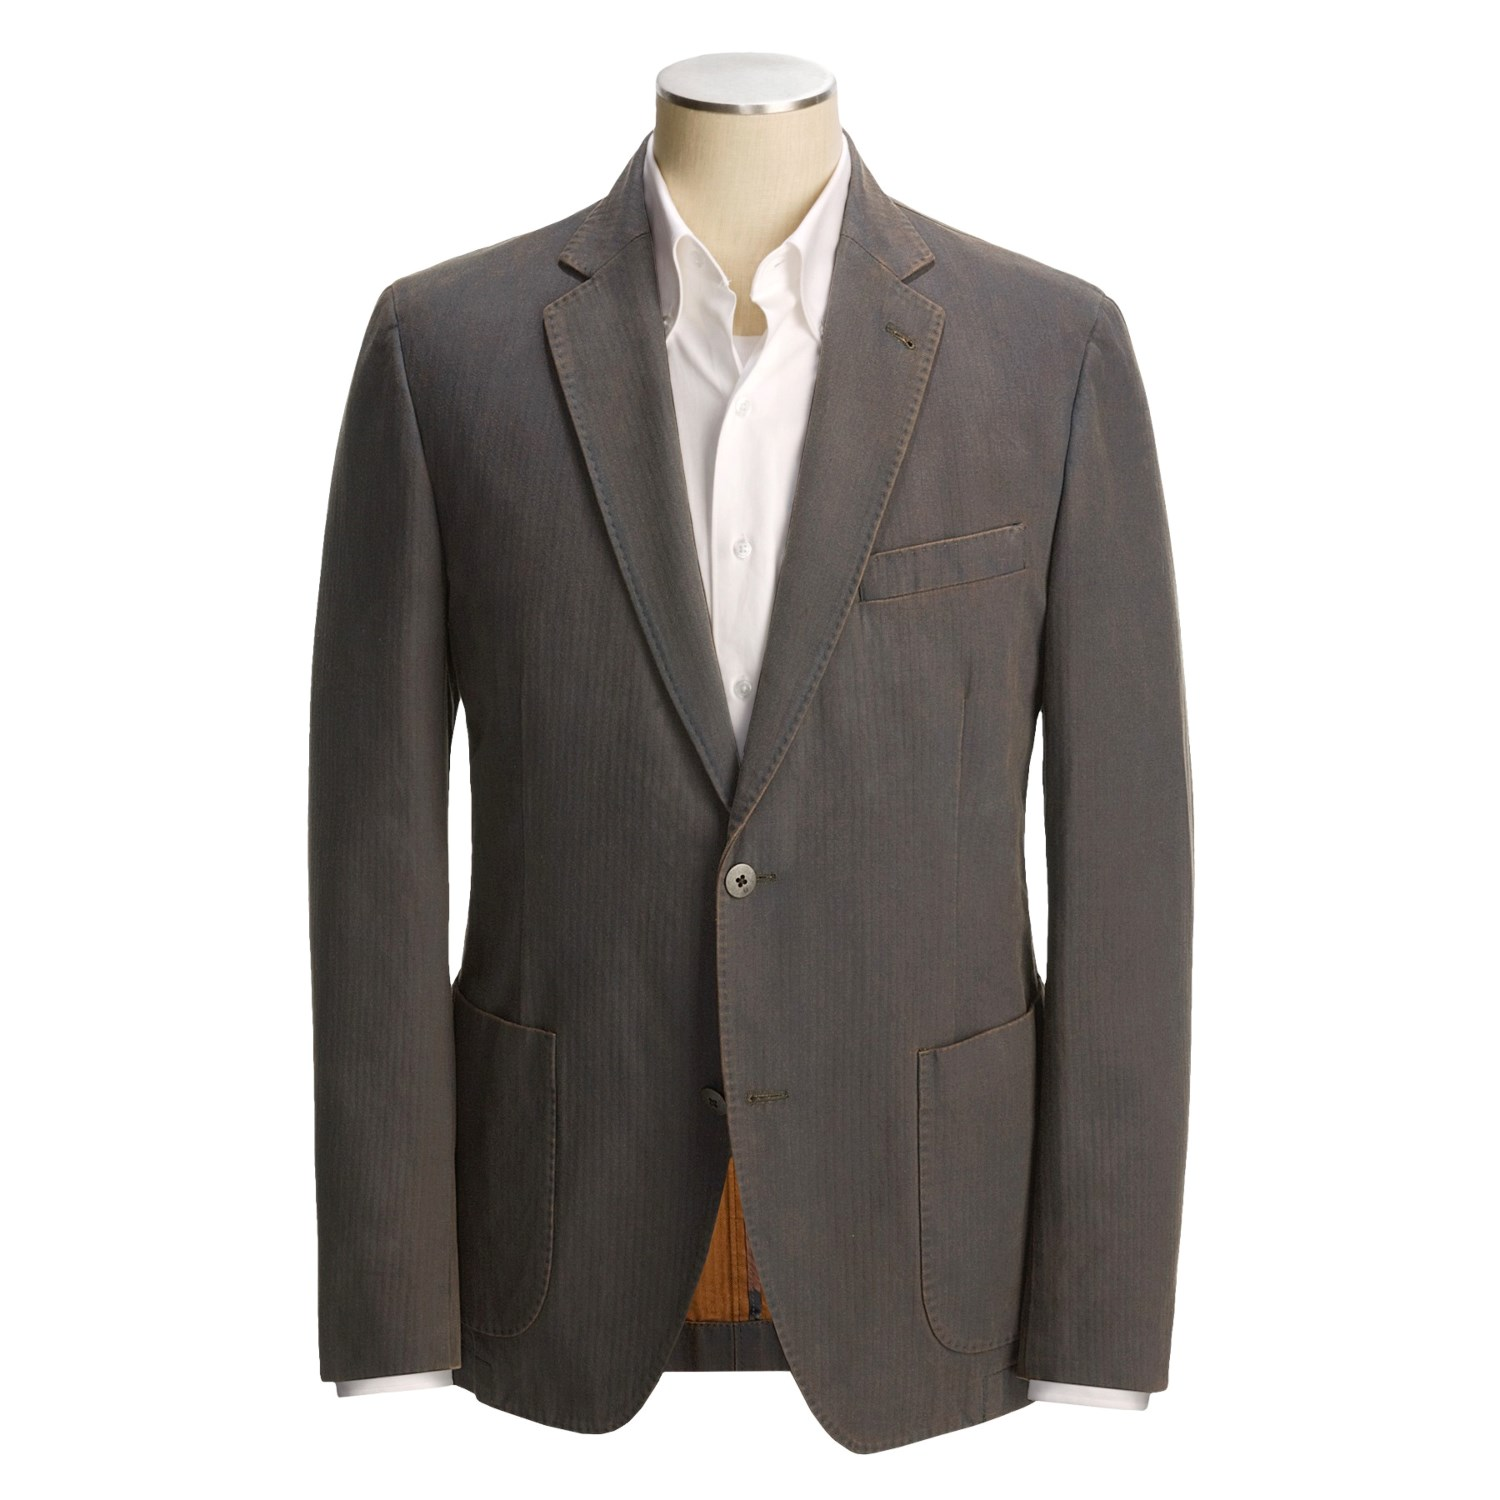 Find great deals on eBay for men sport coat. Shop with confidence.